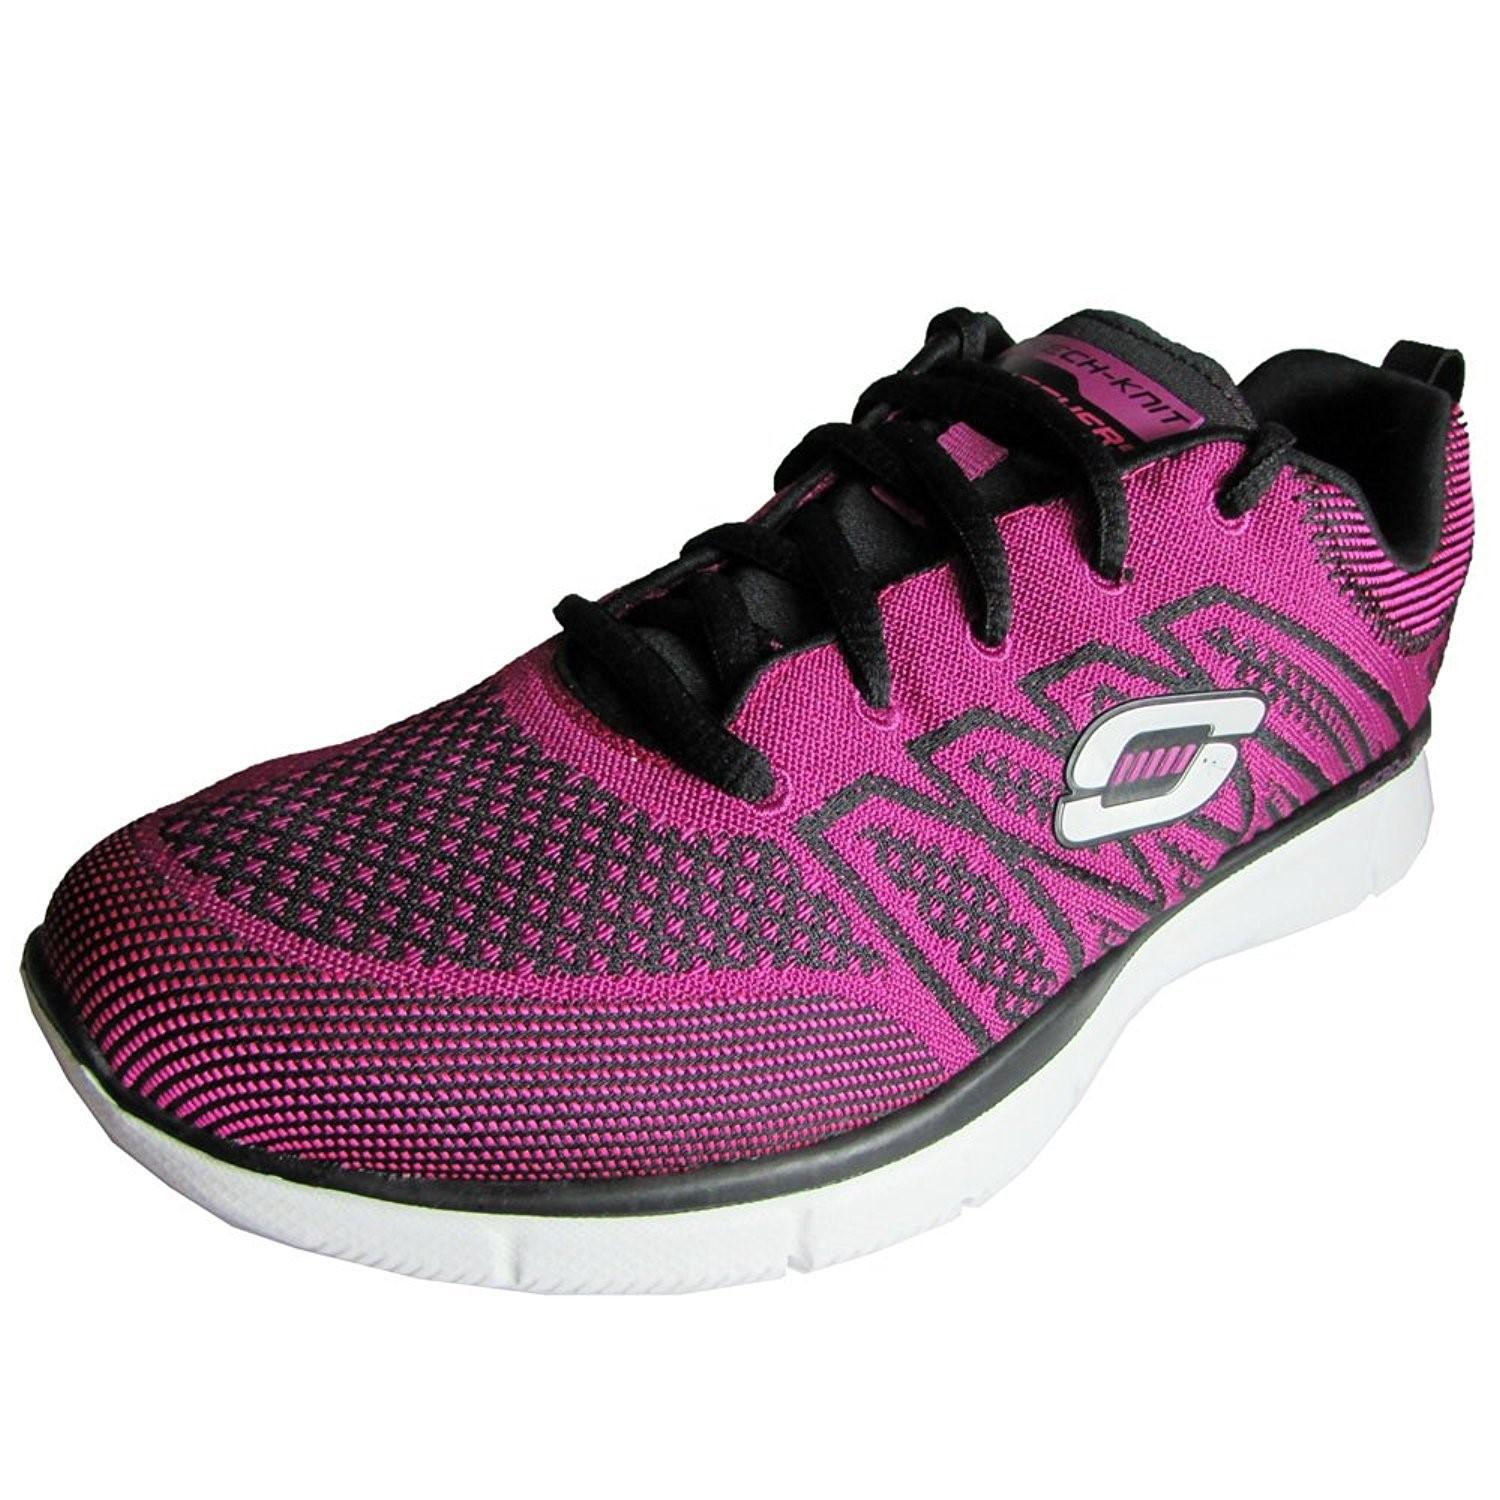 8c07d76a3c01 Lyst - Skechers Above All 12029 Running Shoes